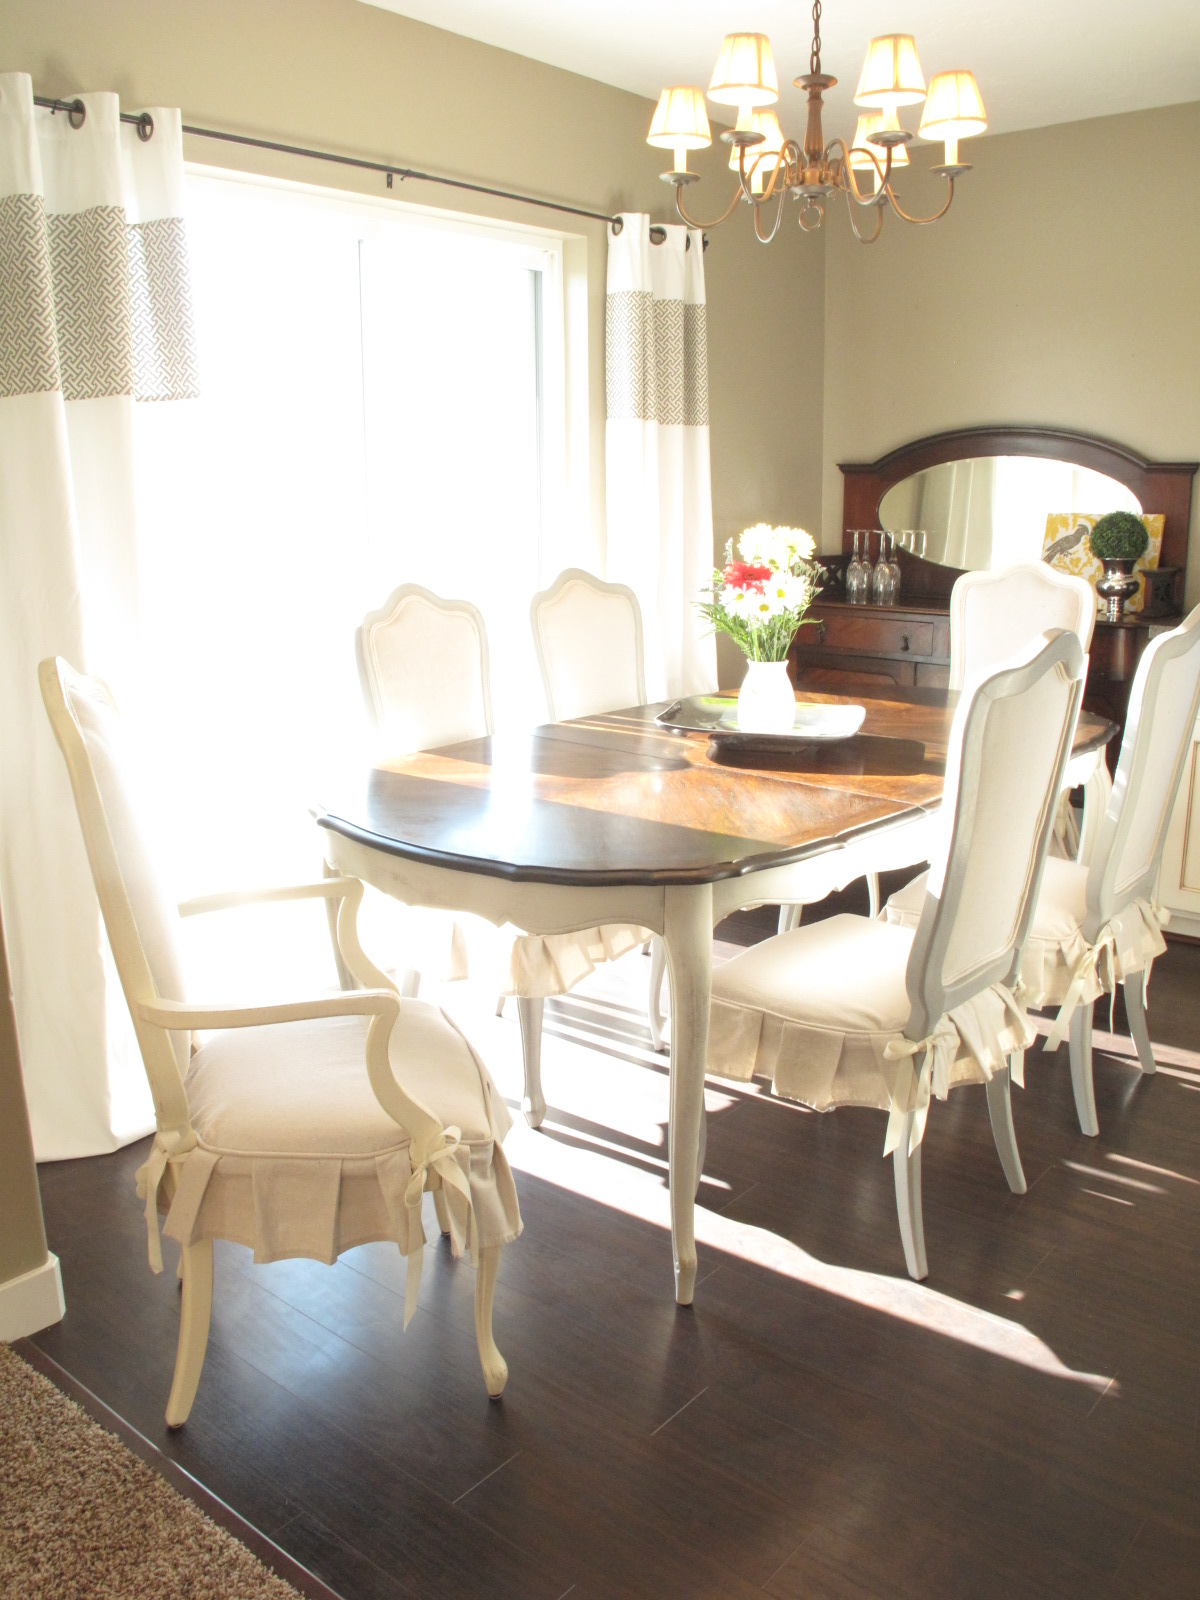 Little Miss Penny Wenny: How to Transform a Dining Room Set